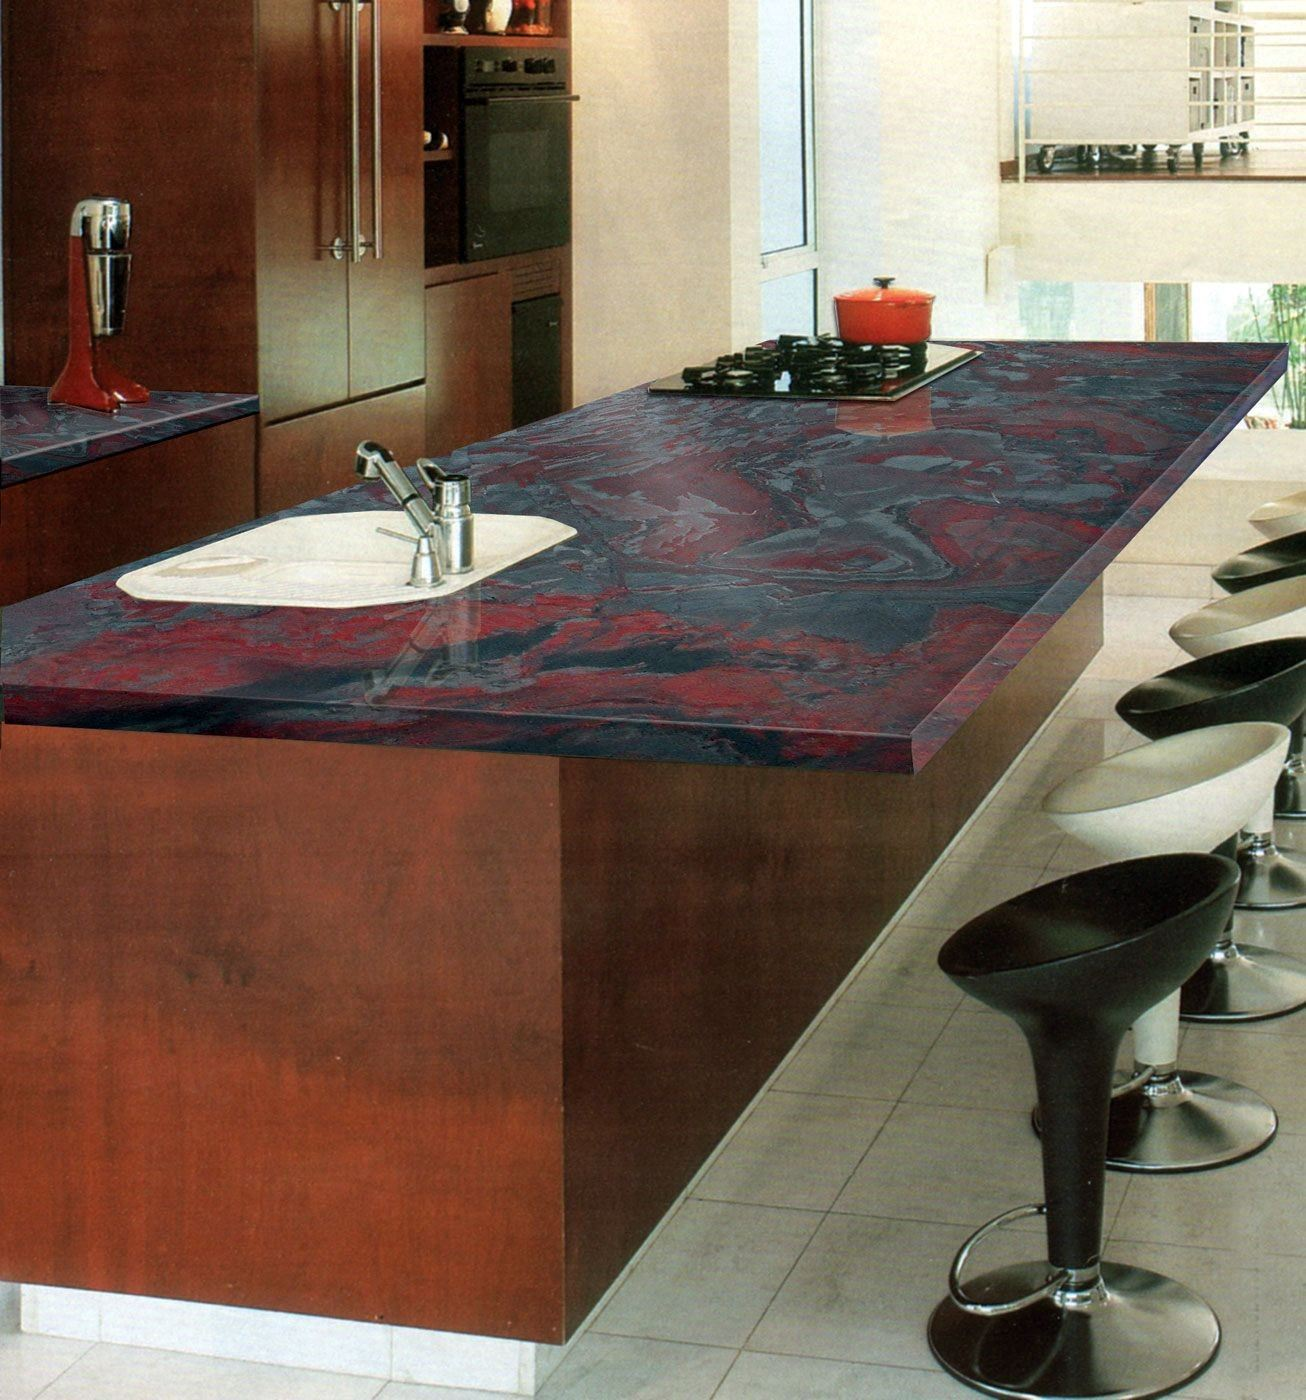 Iron Red Countertop